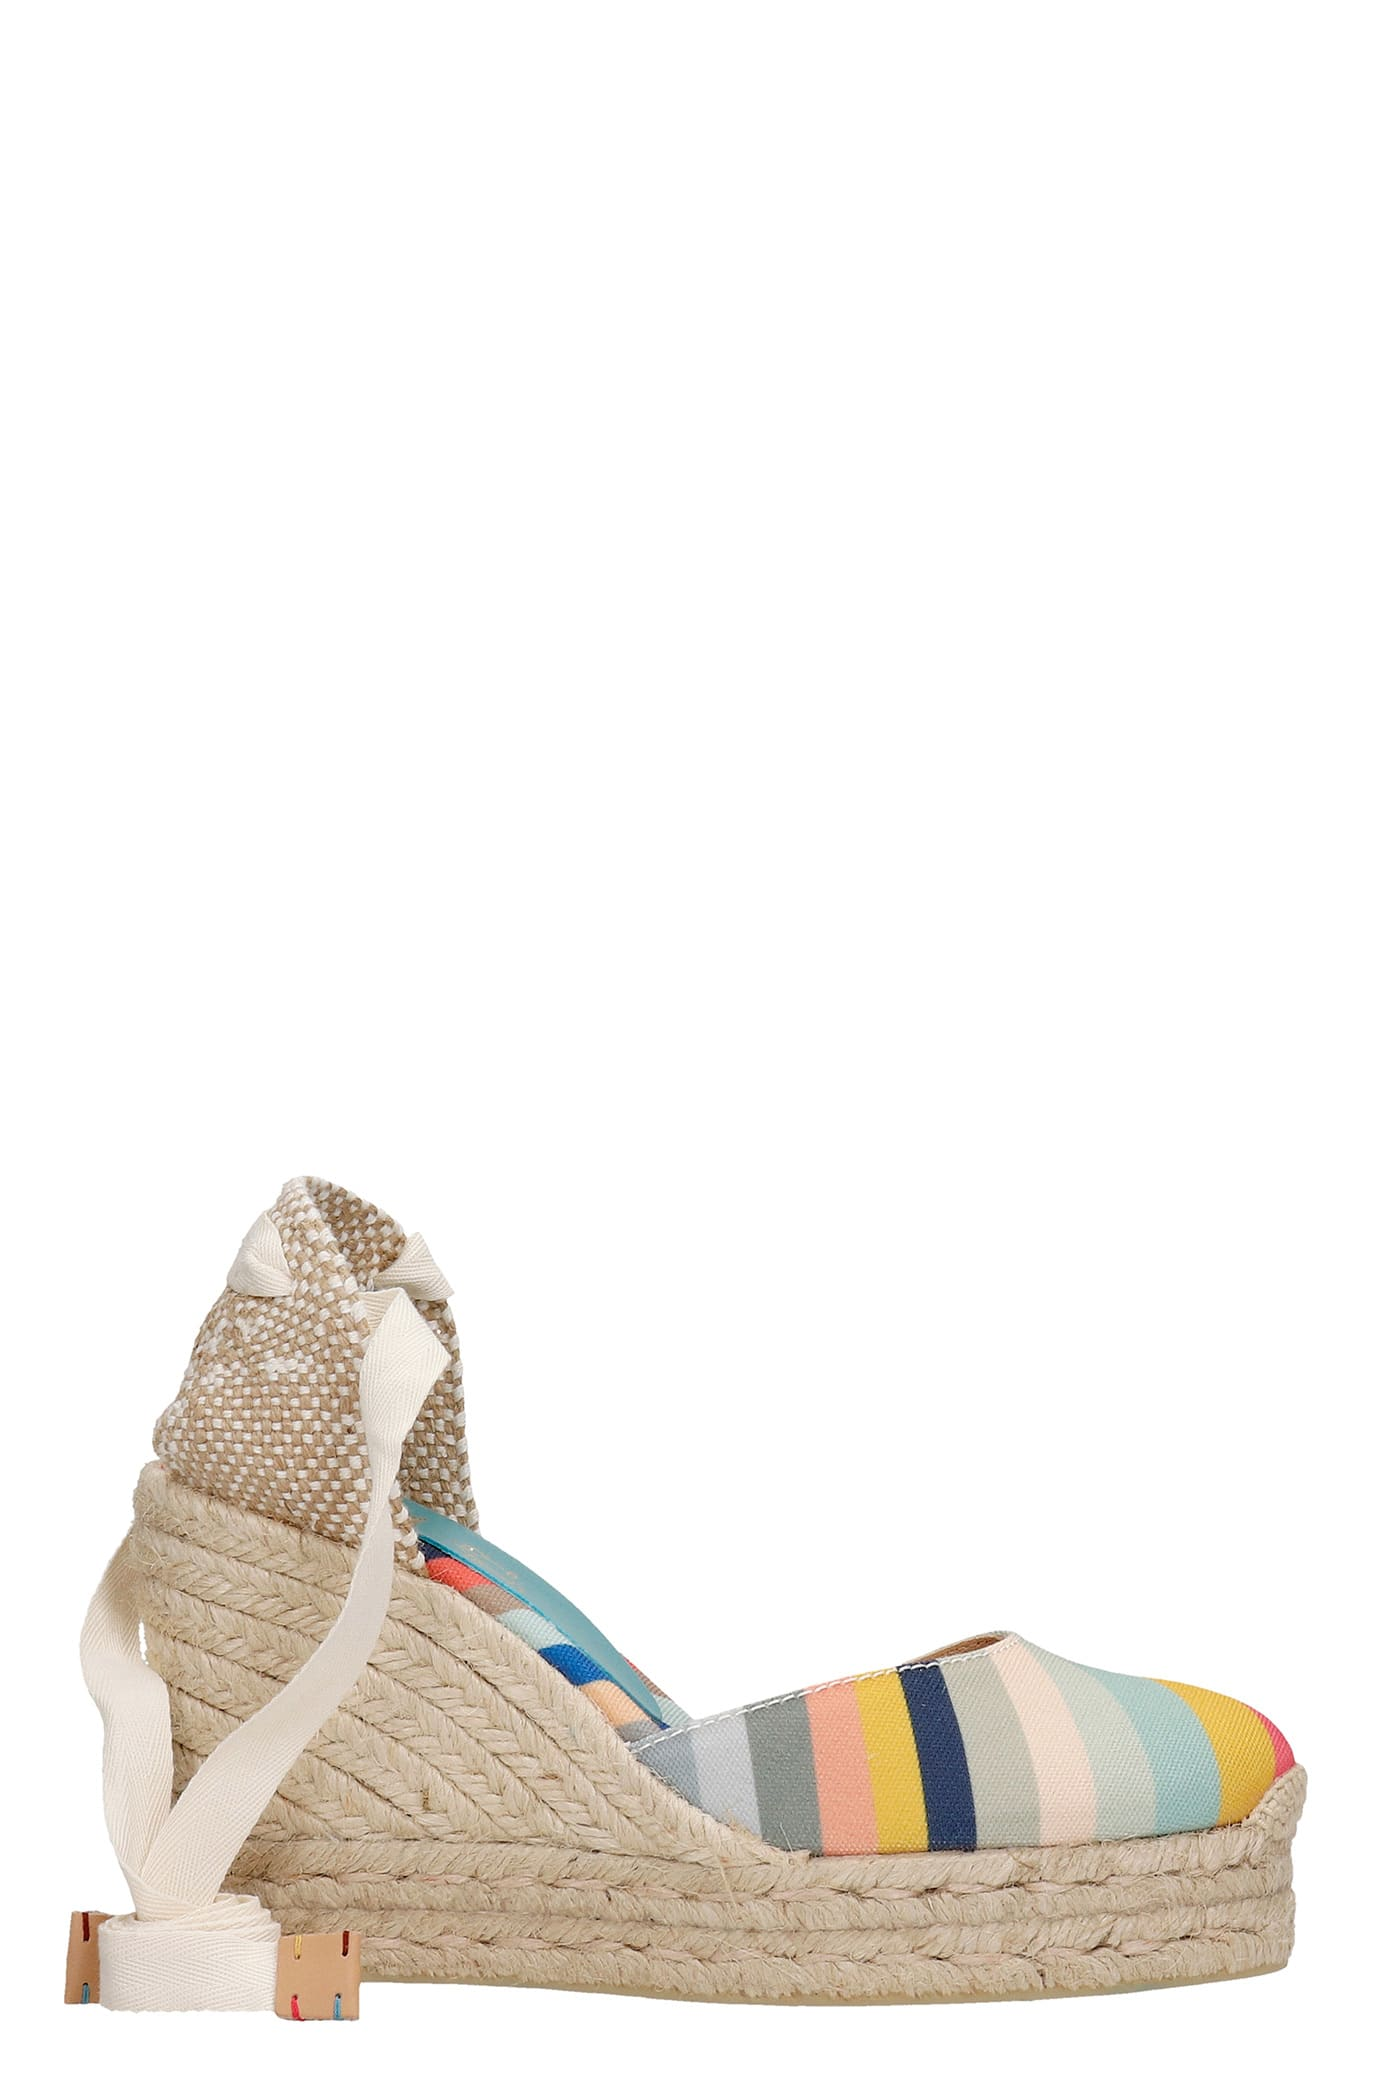 Carina Ps 042 Wedges In Beige Canvas